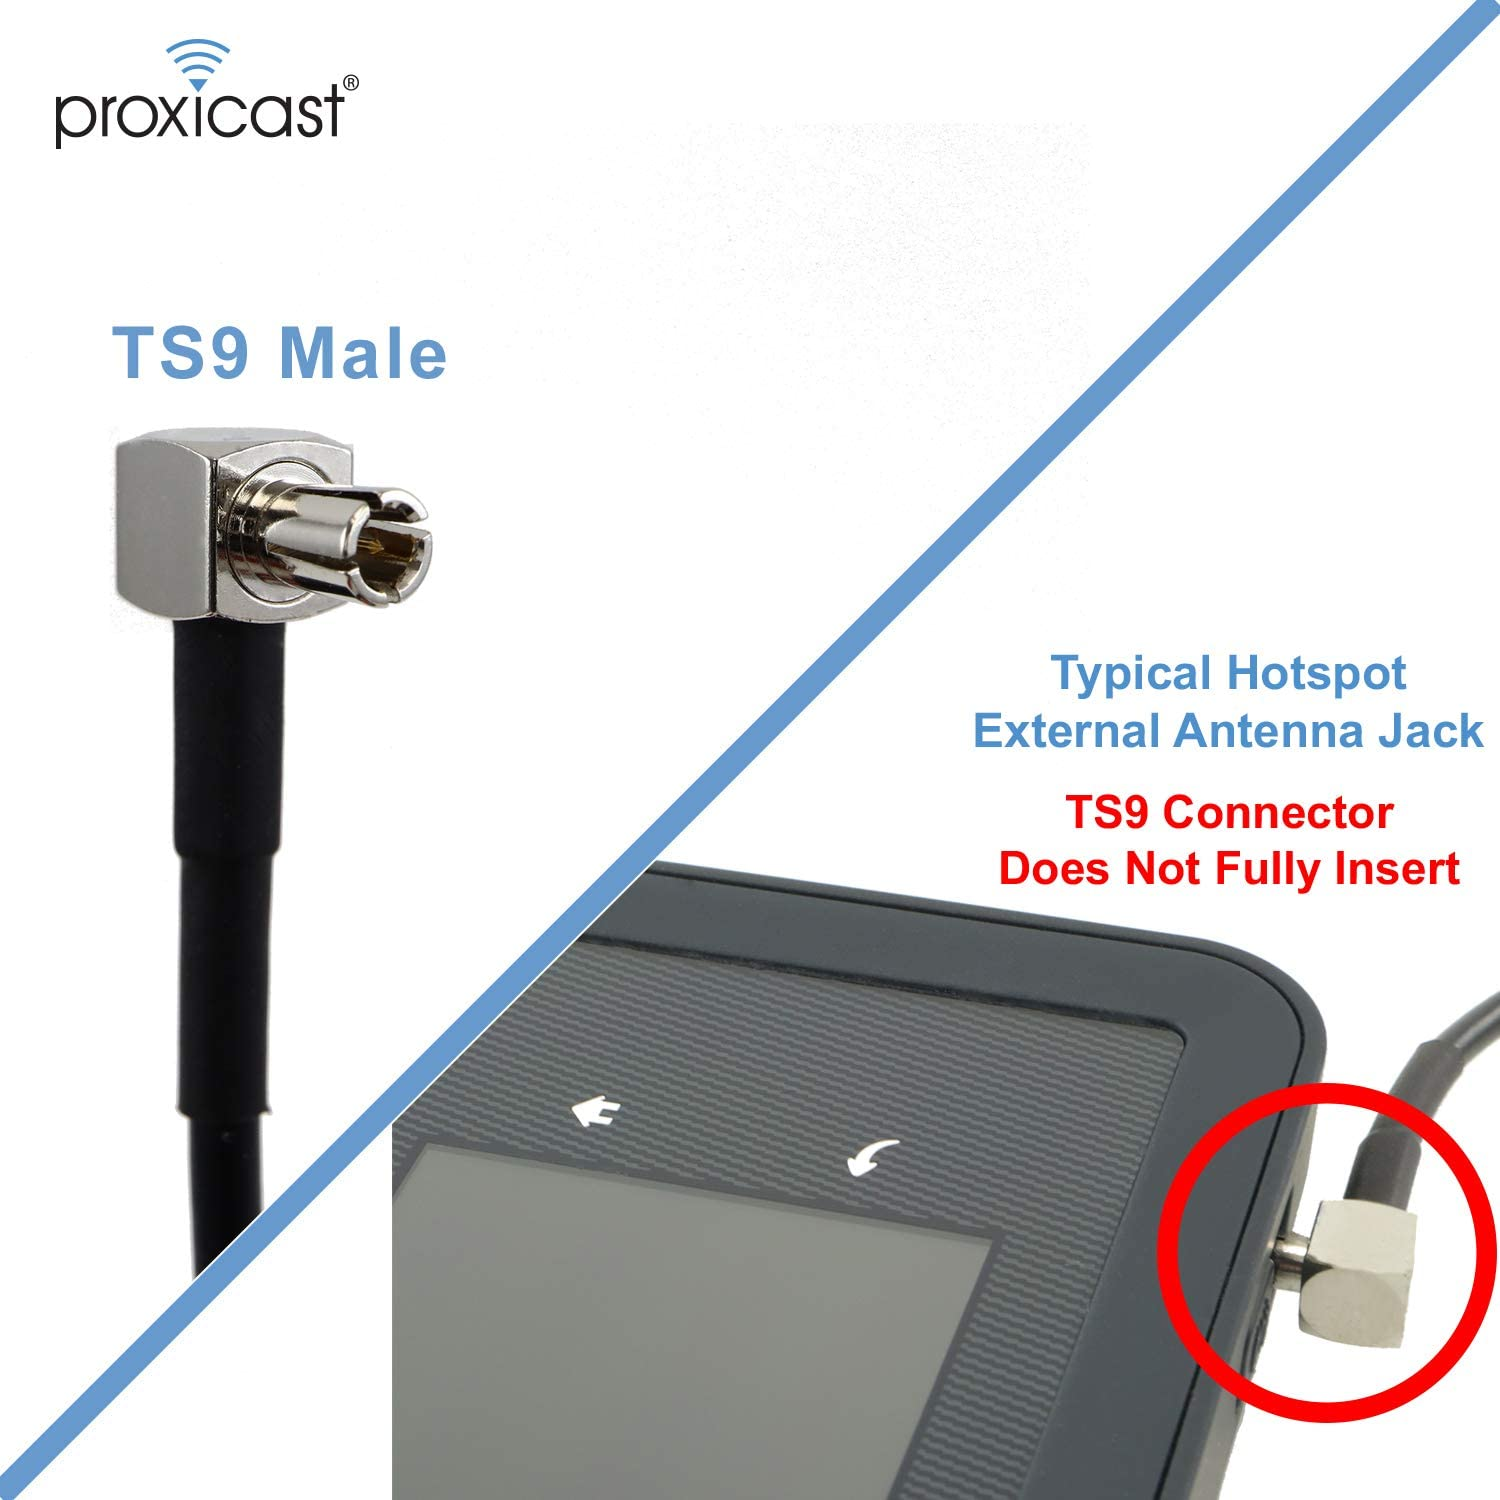 Proxicast 4G / LTE 3-5 dBi Omni-Directional Magnetic Blade Antenna for AT&T Nighthawk, Velocity, Beam, Verizon Jetpack, MiFi & Other modems w/ TS9 ...